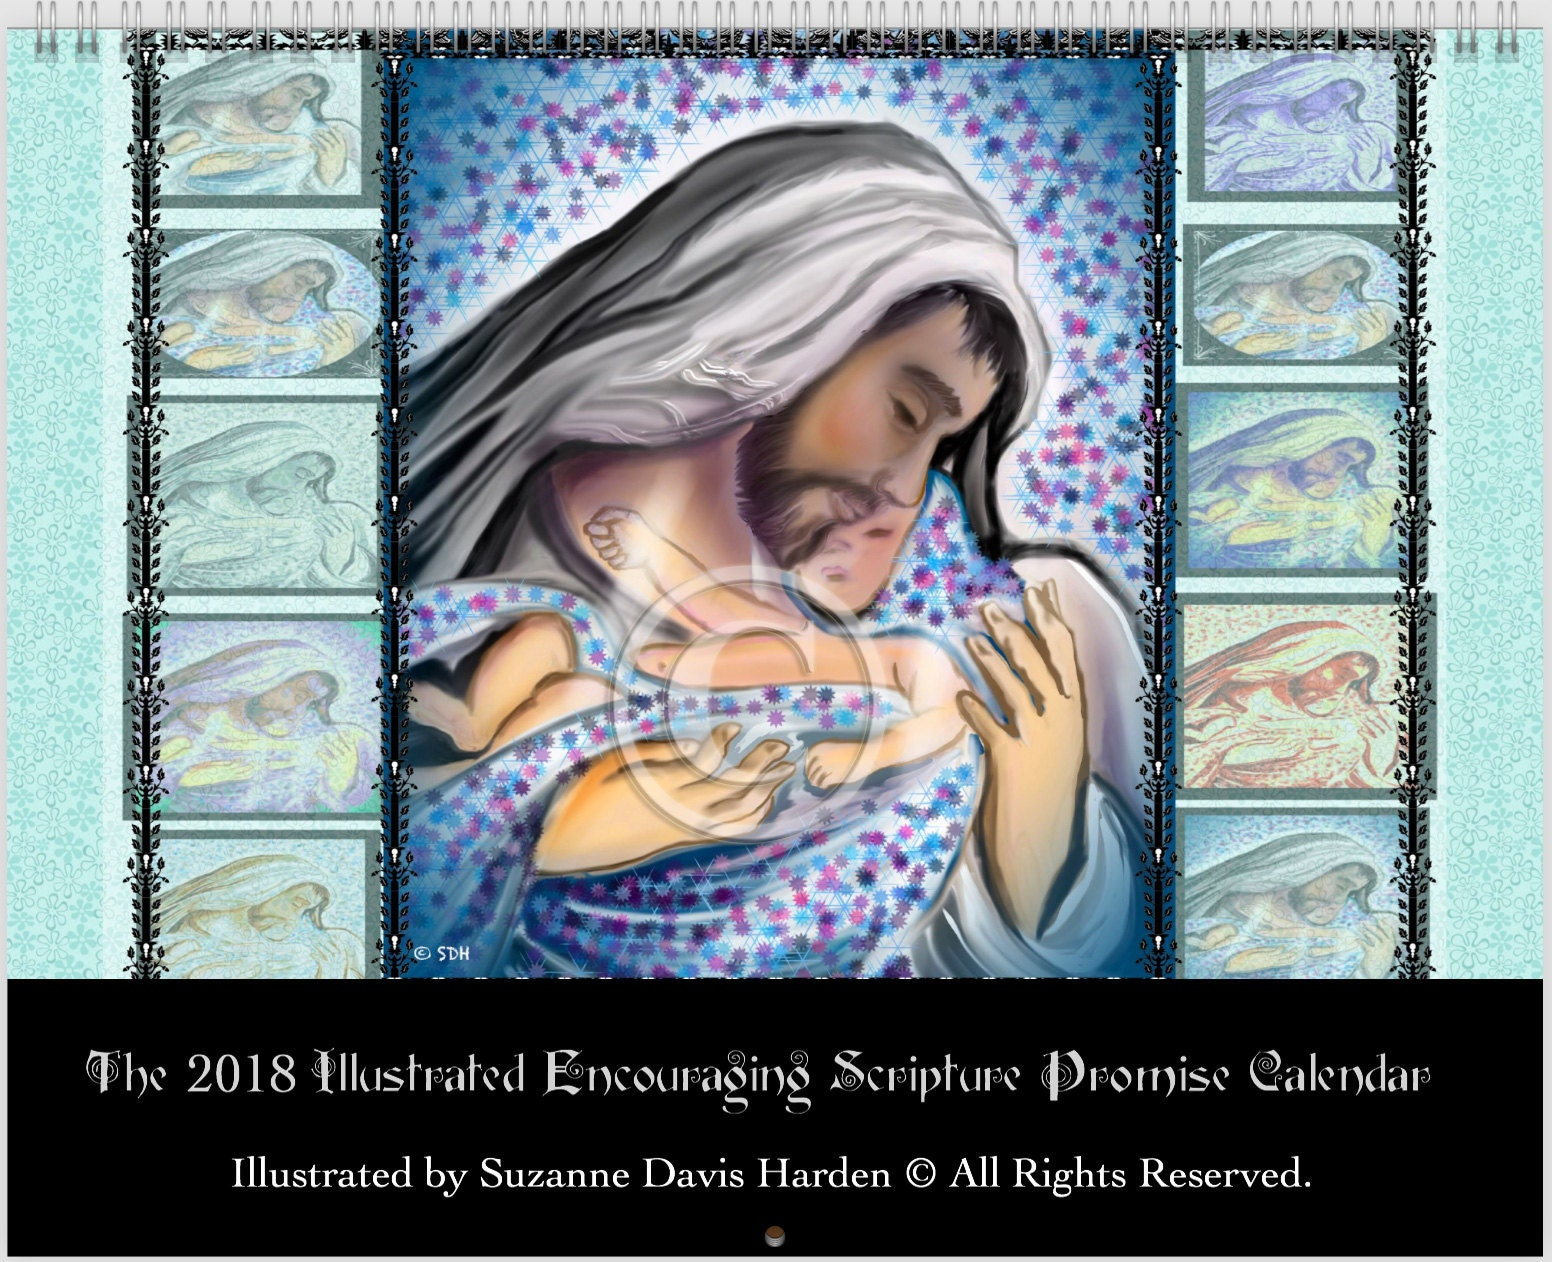 The 2018 Illustrated Encouraging Promise Calendar